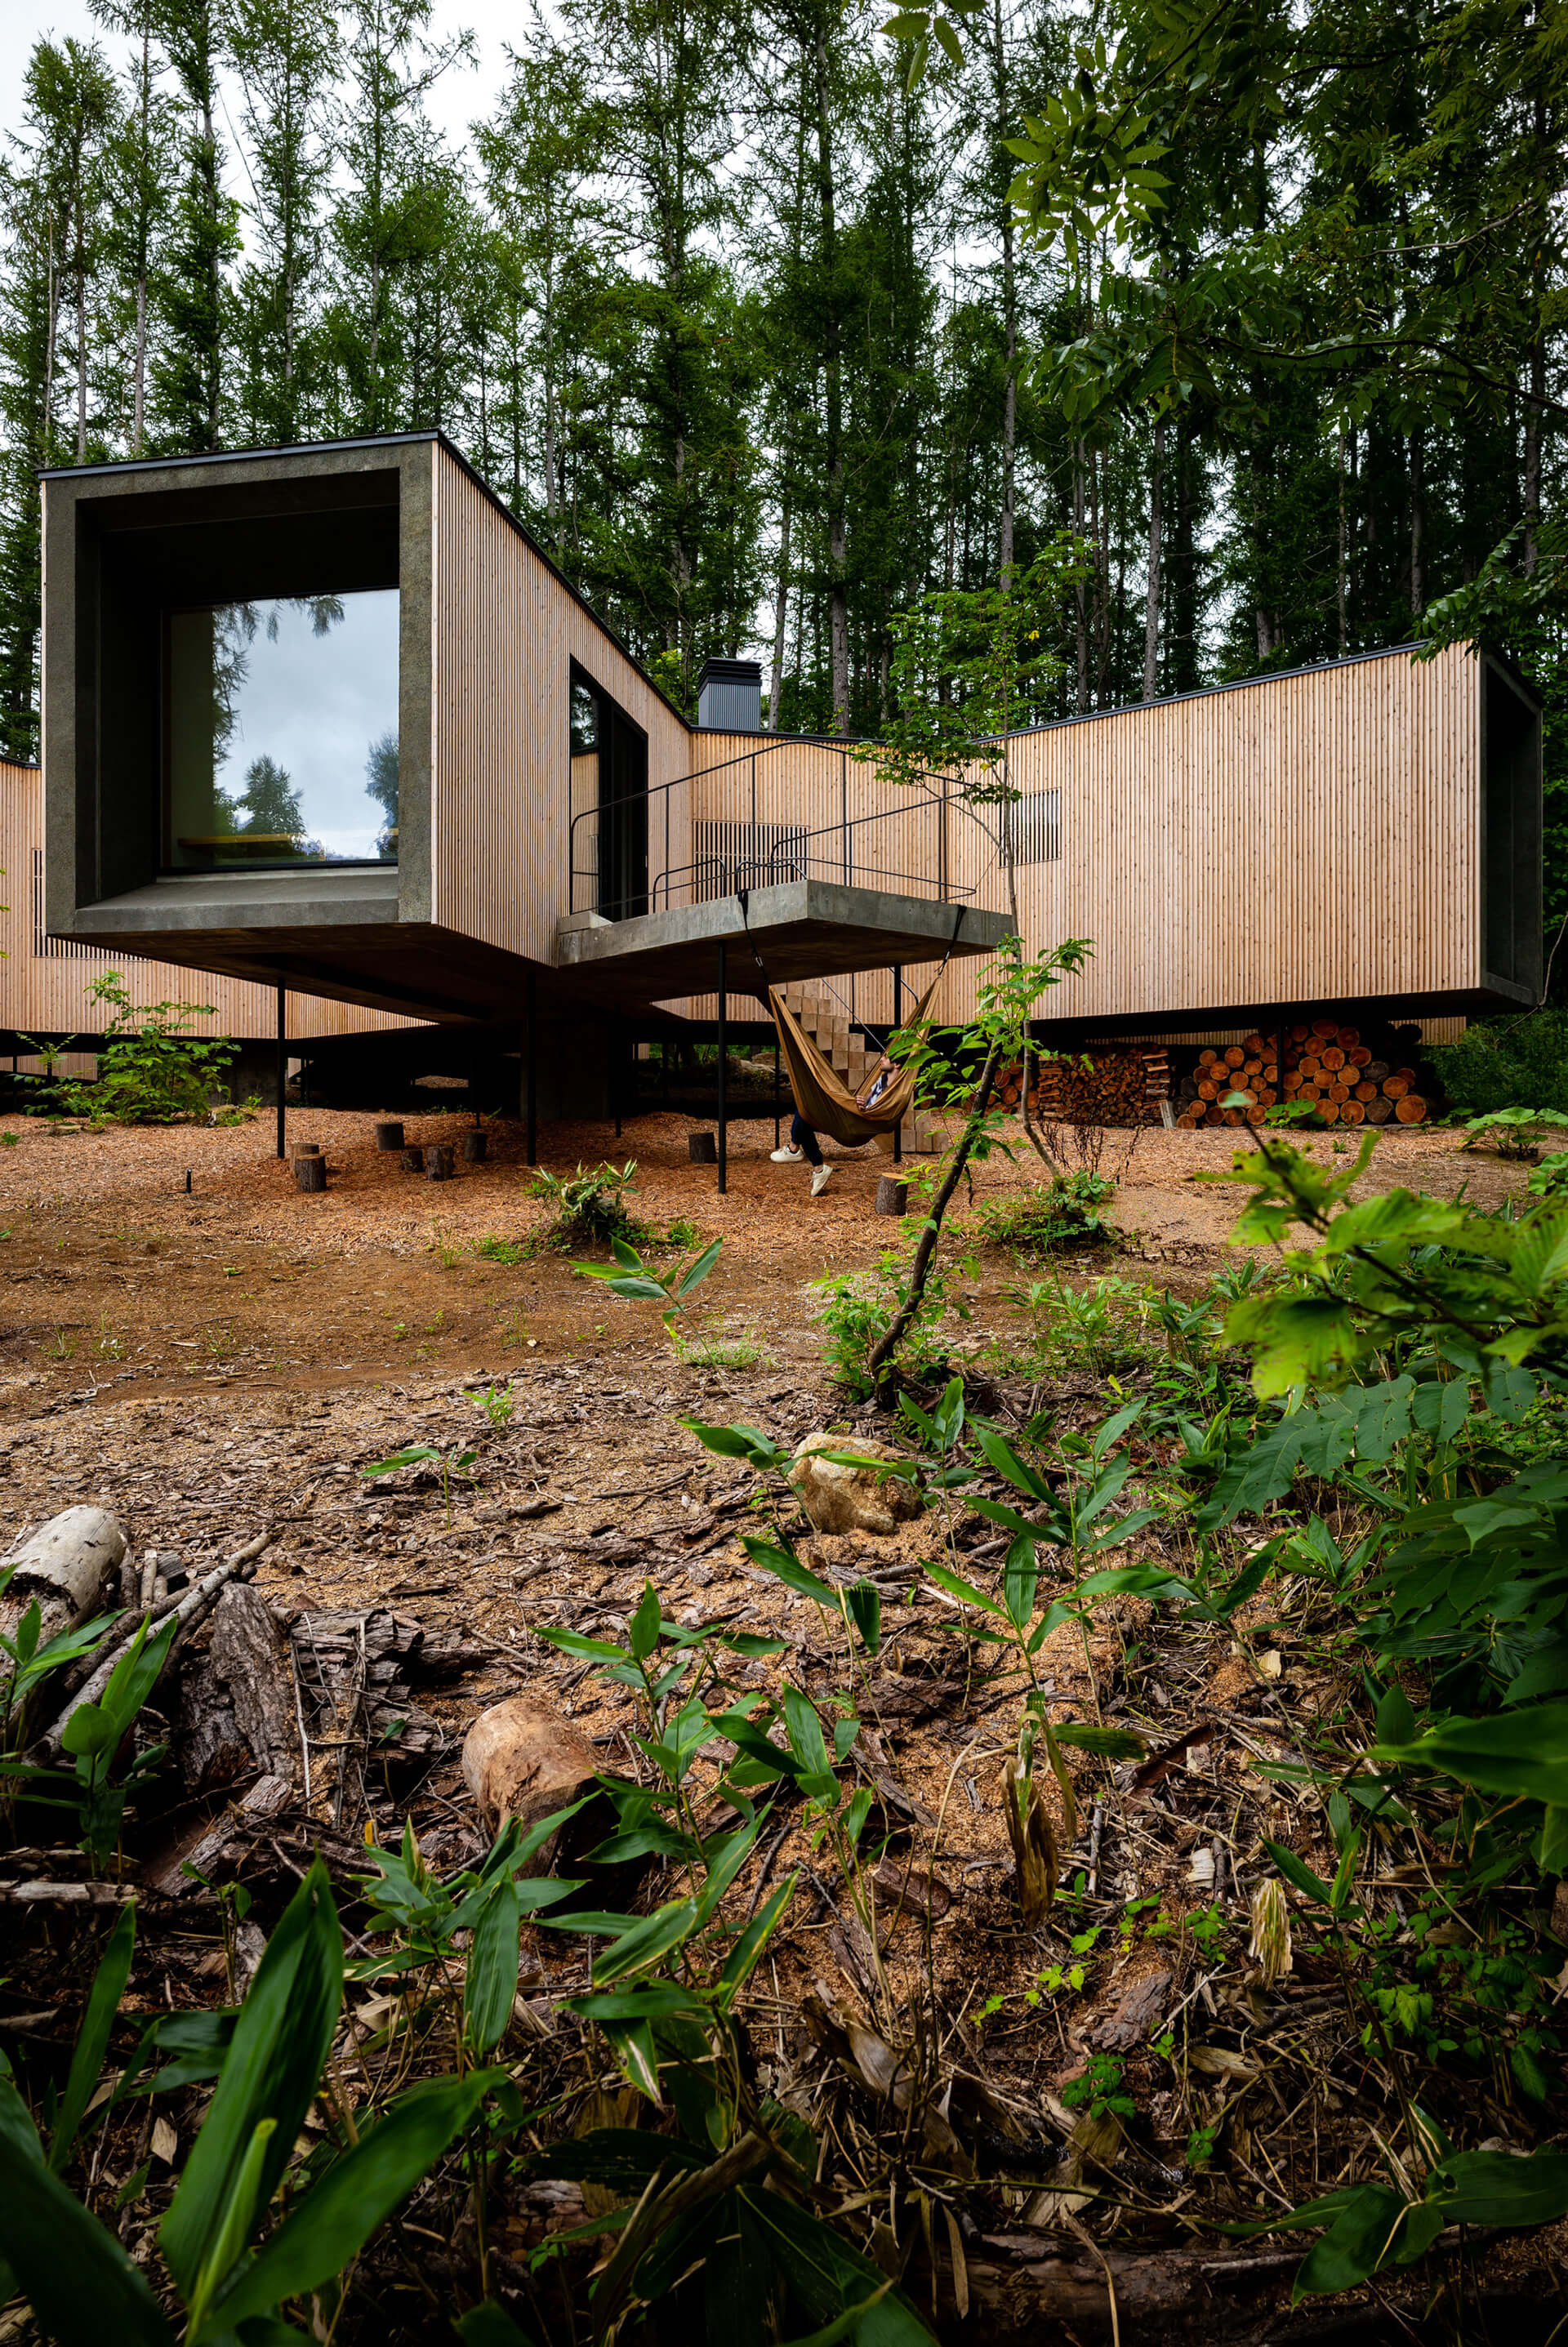 The dwelling's entrance | House in the Forest designed by Florian Busch Architects | STIRworld